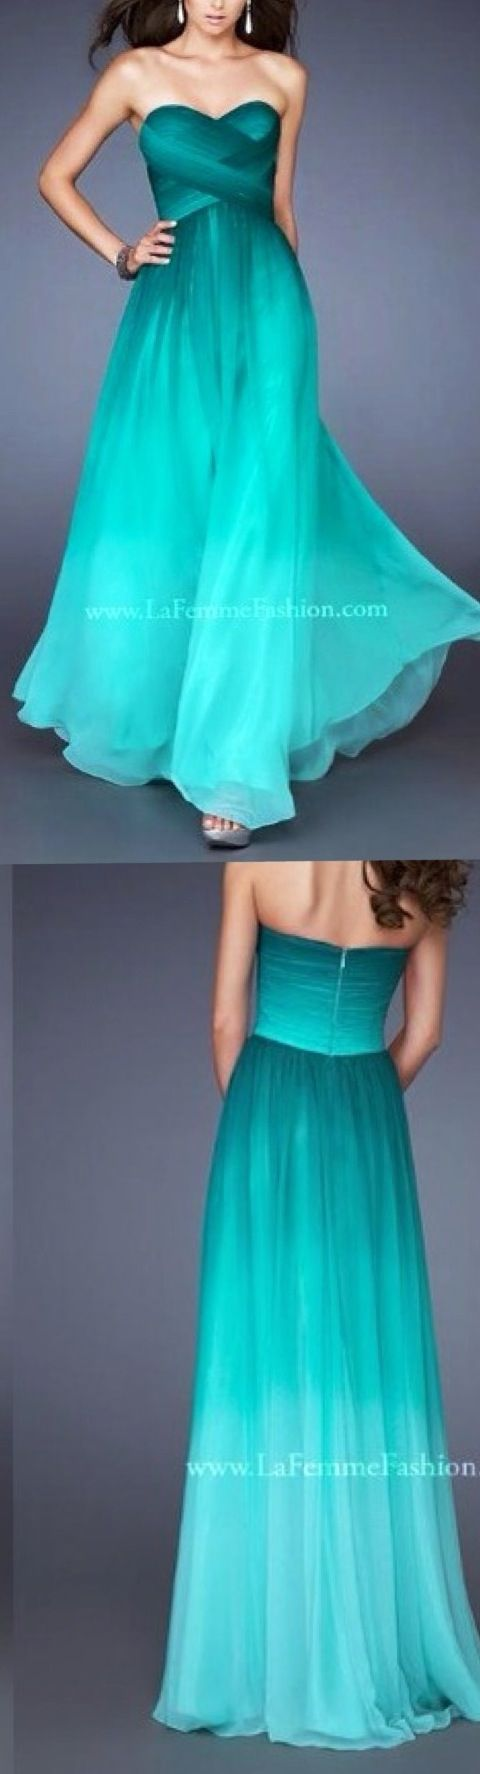 Aqua dress - THIS IS LIKE MY DREAM DRESS!!!!!!!!!!!!!!!!!!!!!!!!!!!!!!!!!!!!!!!!!!!!!!!